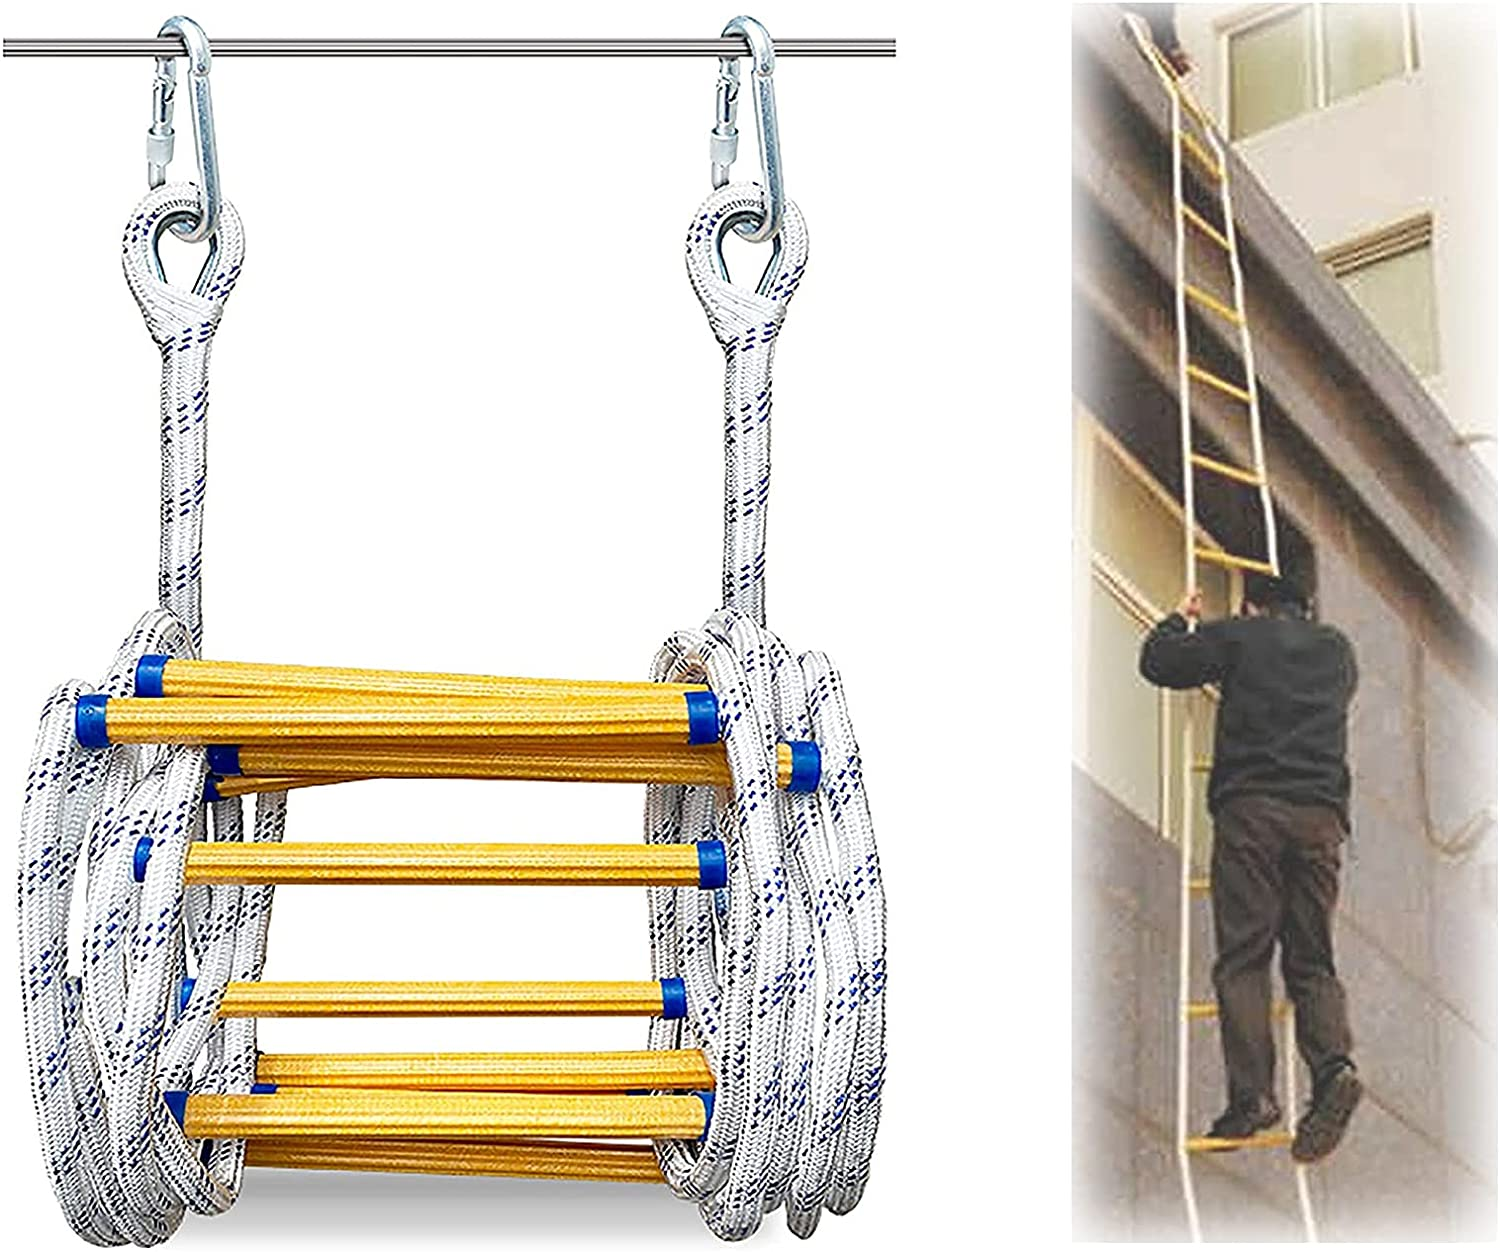 Rope Ladder Fireproof Rescue 3m-30m Feet 9.8-98 E Fire Sale SALE% OFF Cheap super special price